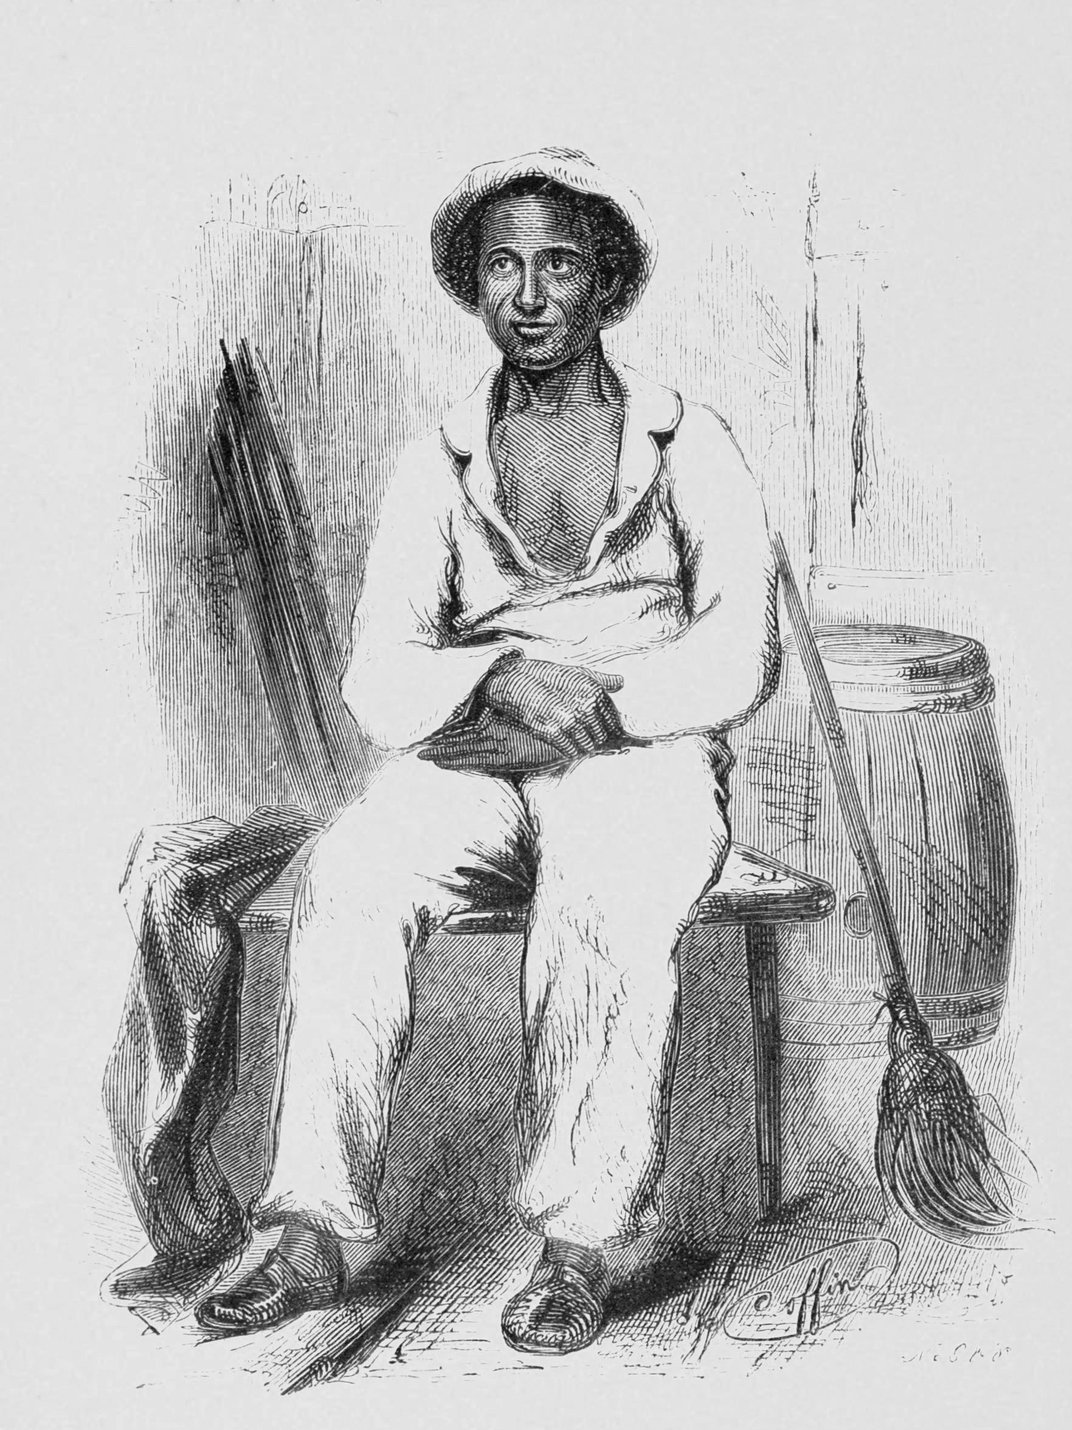 The New York Times' 1853 Coverage of Solomon Northup, the Hero of